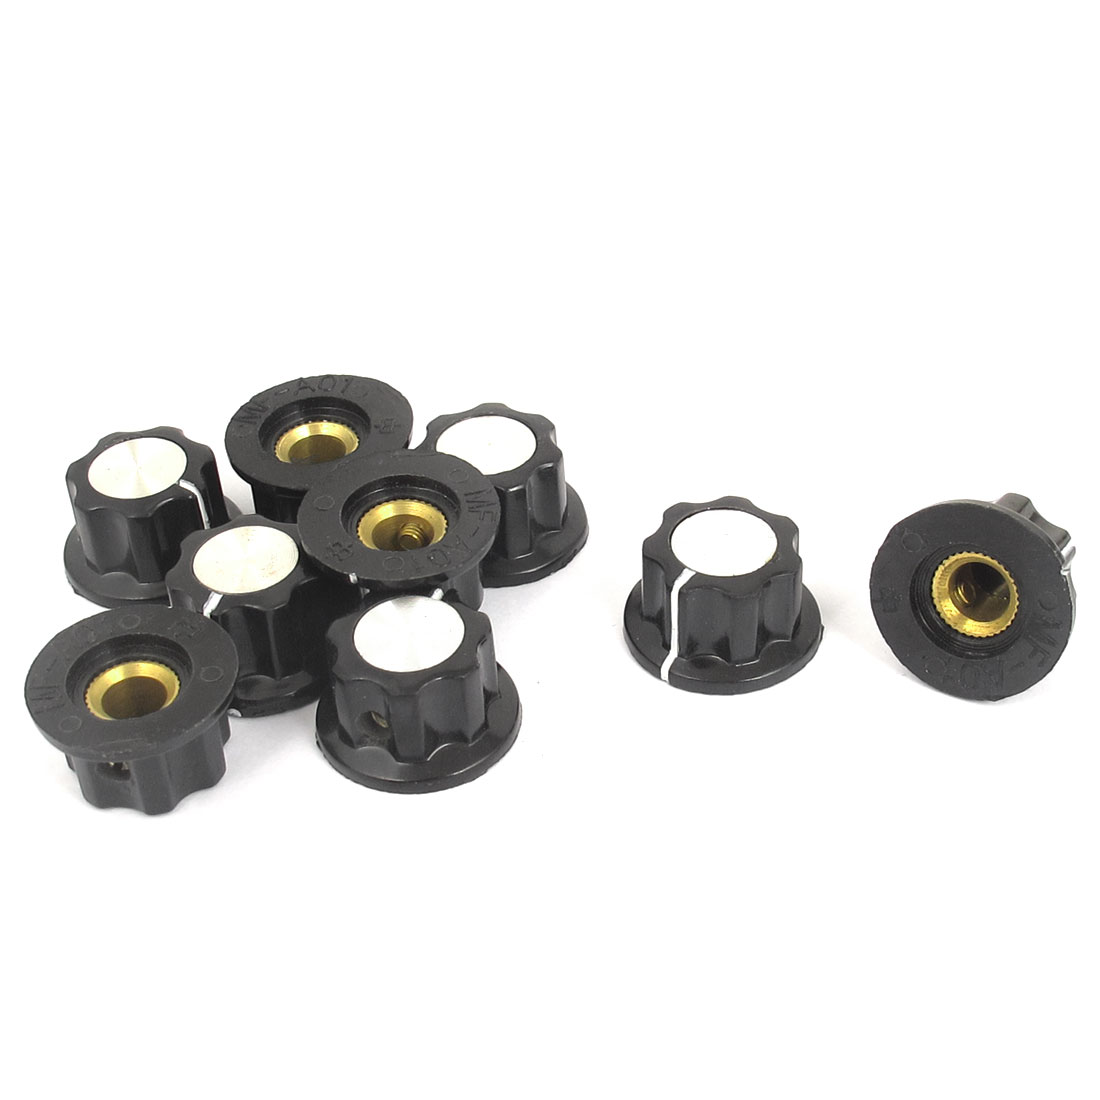 9pcs Black Plastic 6mm Thread Srew Type Round Potentiometer Knob Cap MF-A01